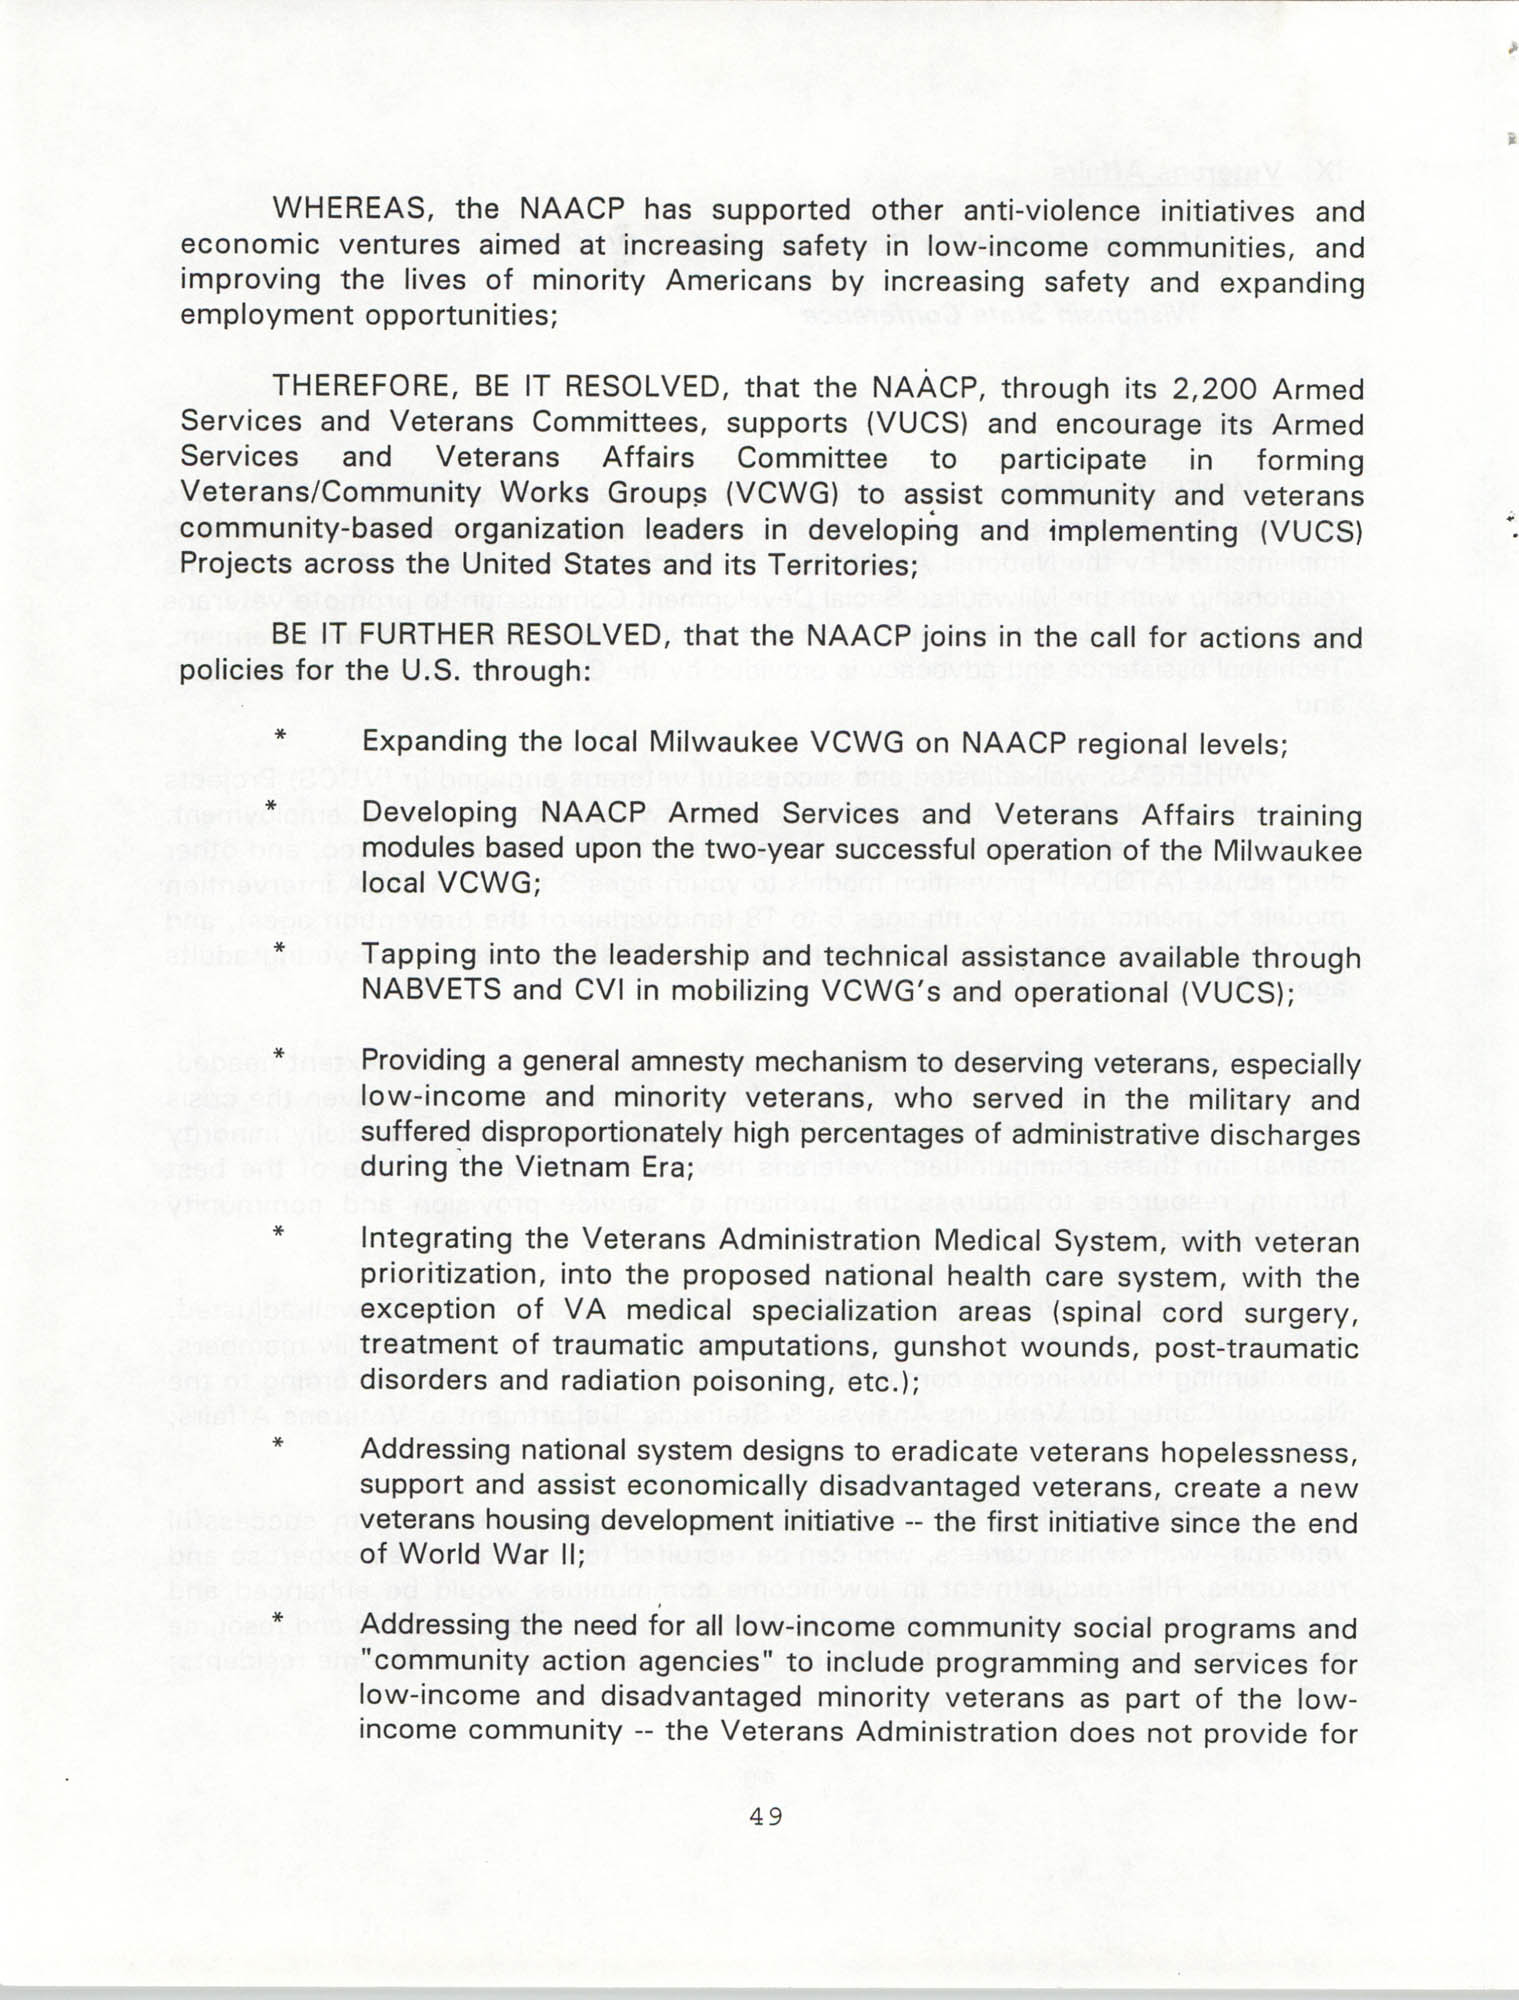 Resolutions Submitted Under Article X, Section 2 of the Constitution of the NAACP, 1994, Page 49